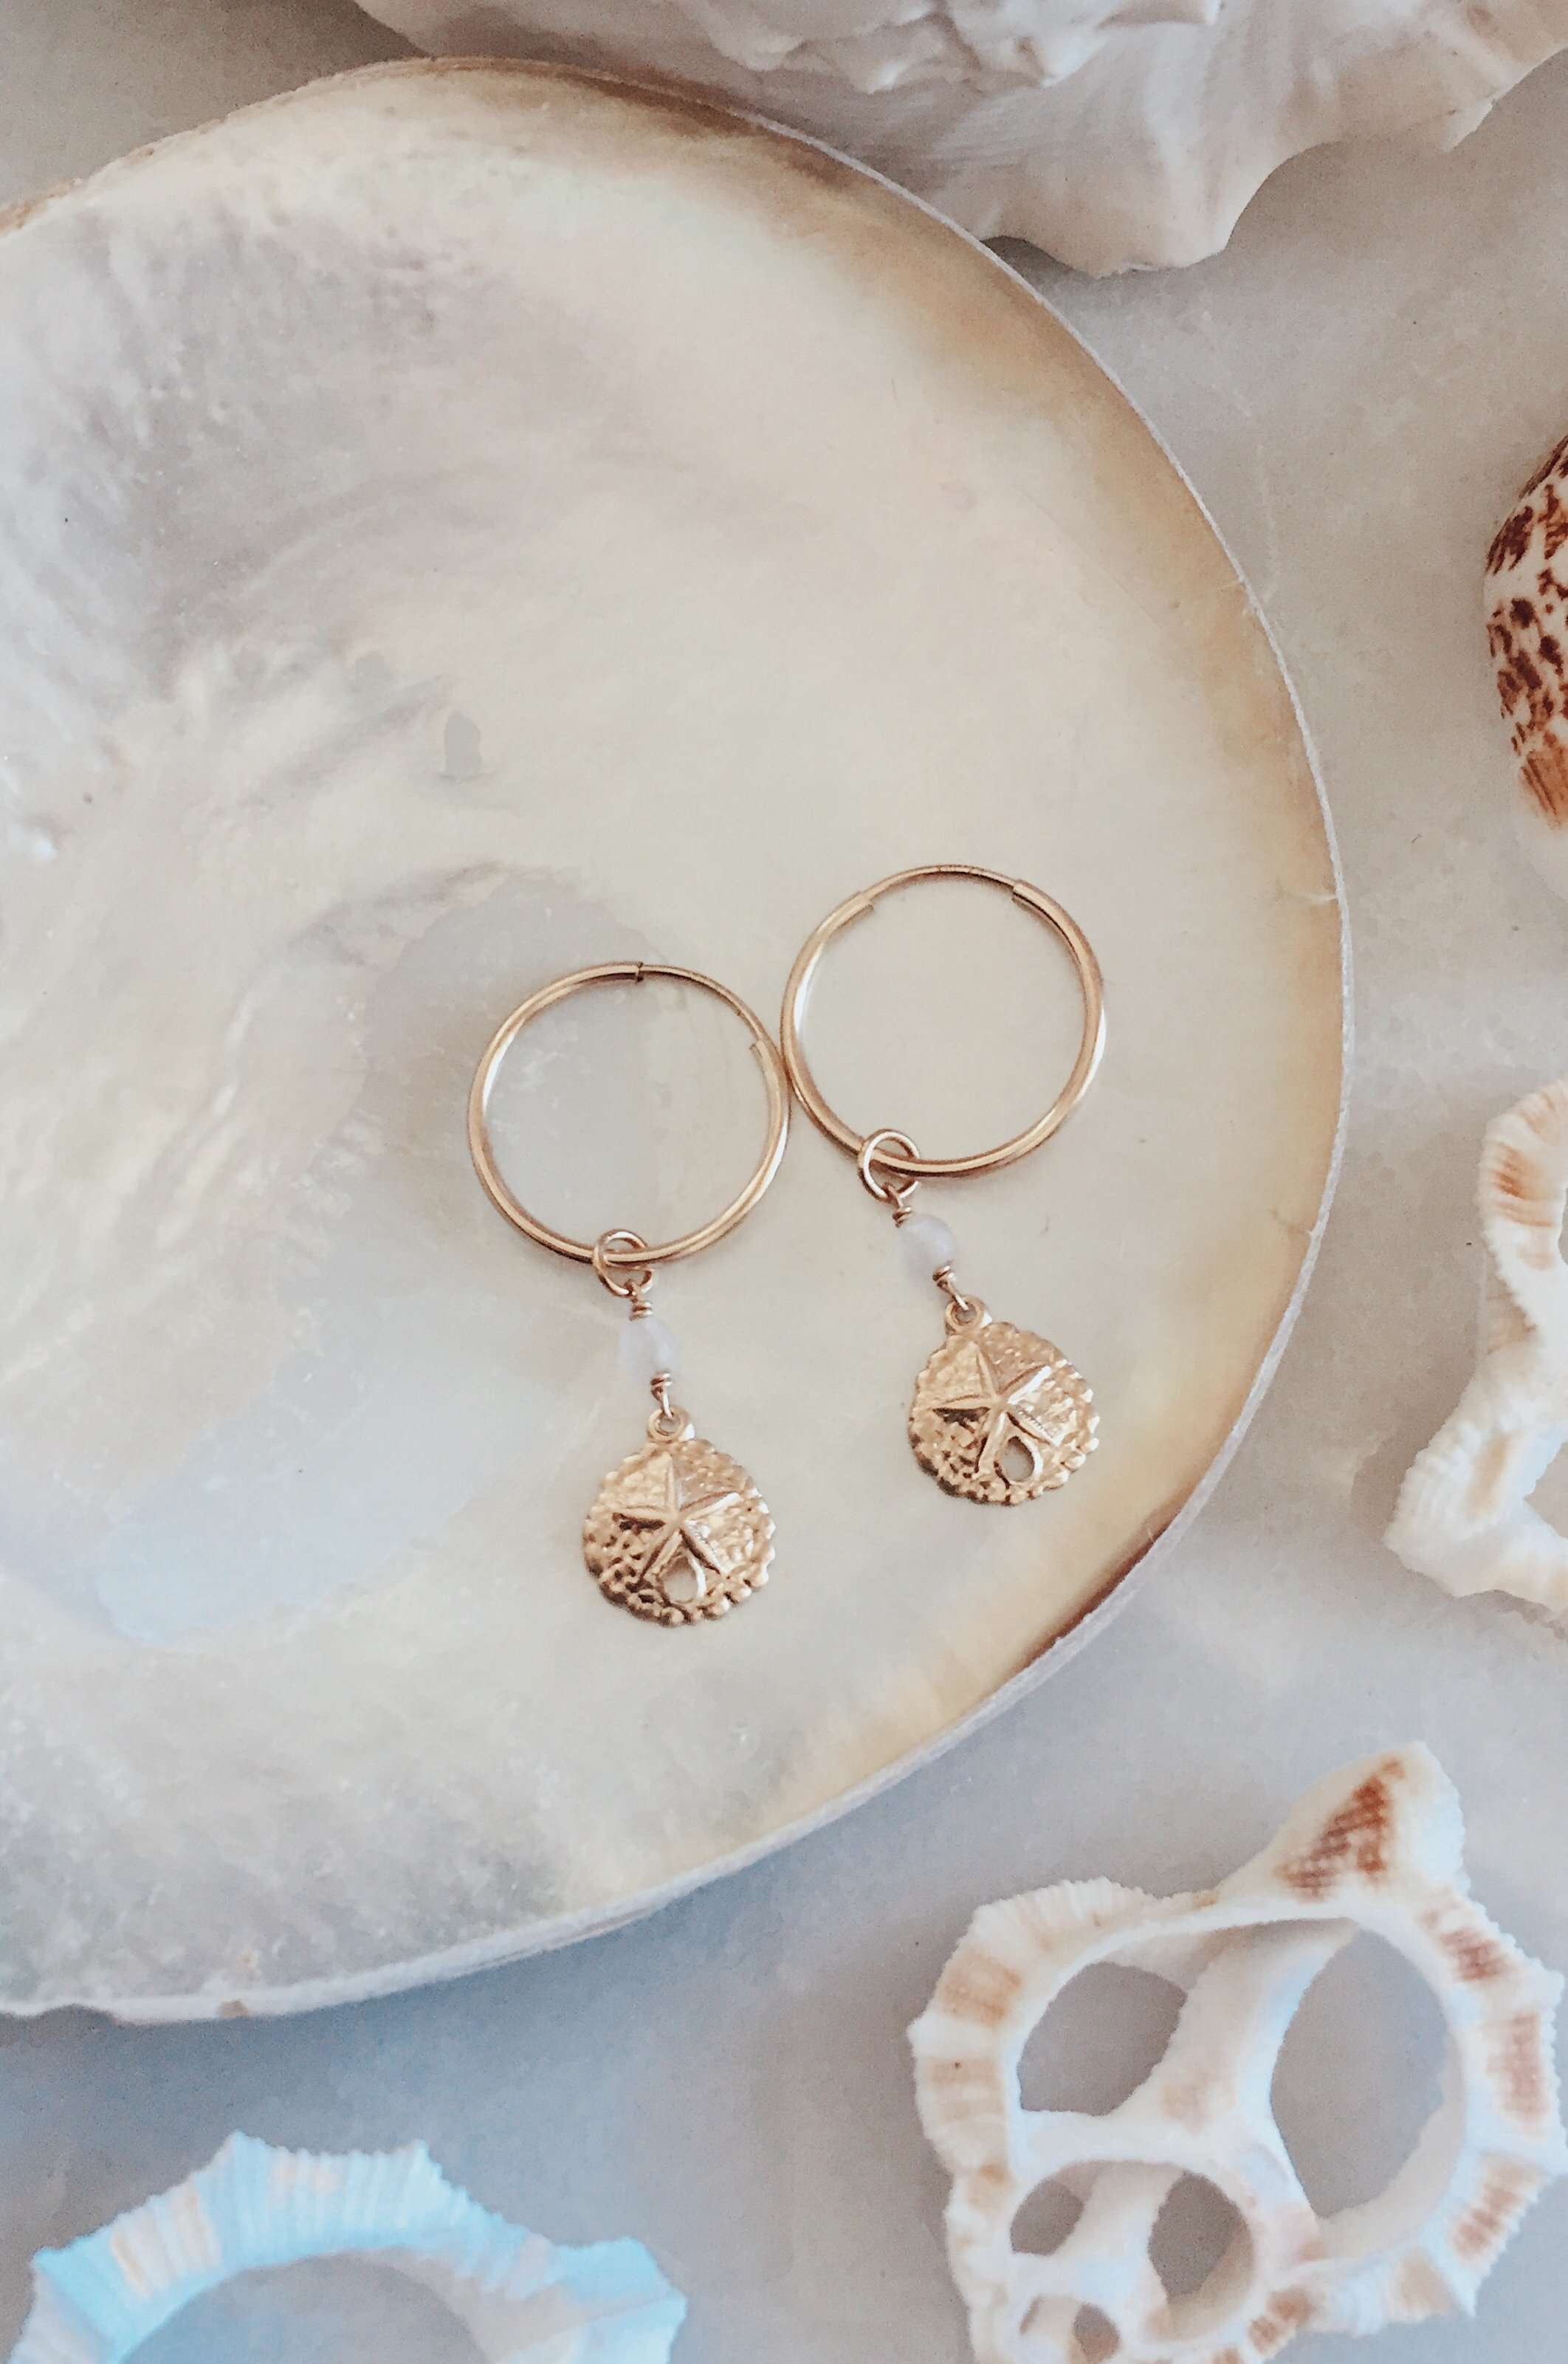 Gold Fill Sandollar Hoops, Earrings with Rose Quartz by Lunarsea Designs